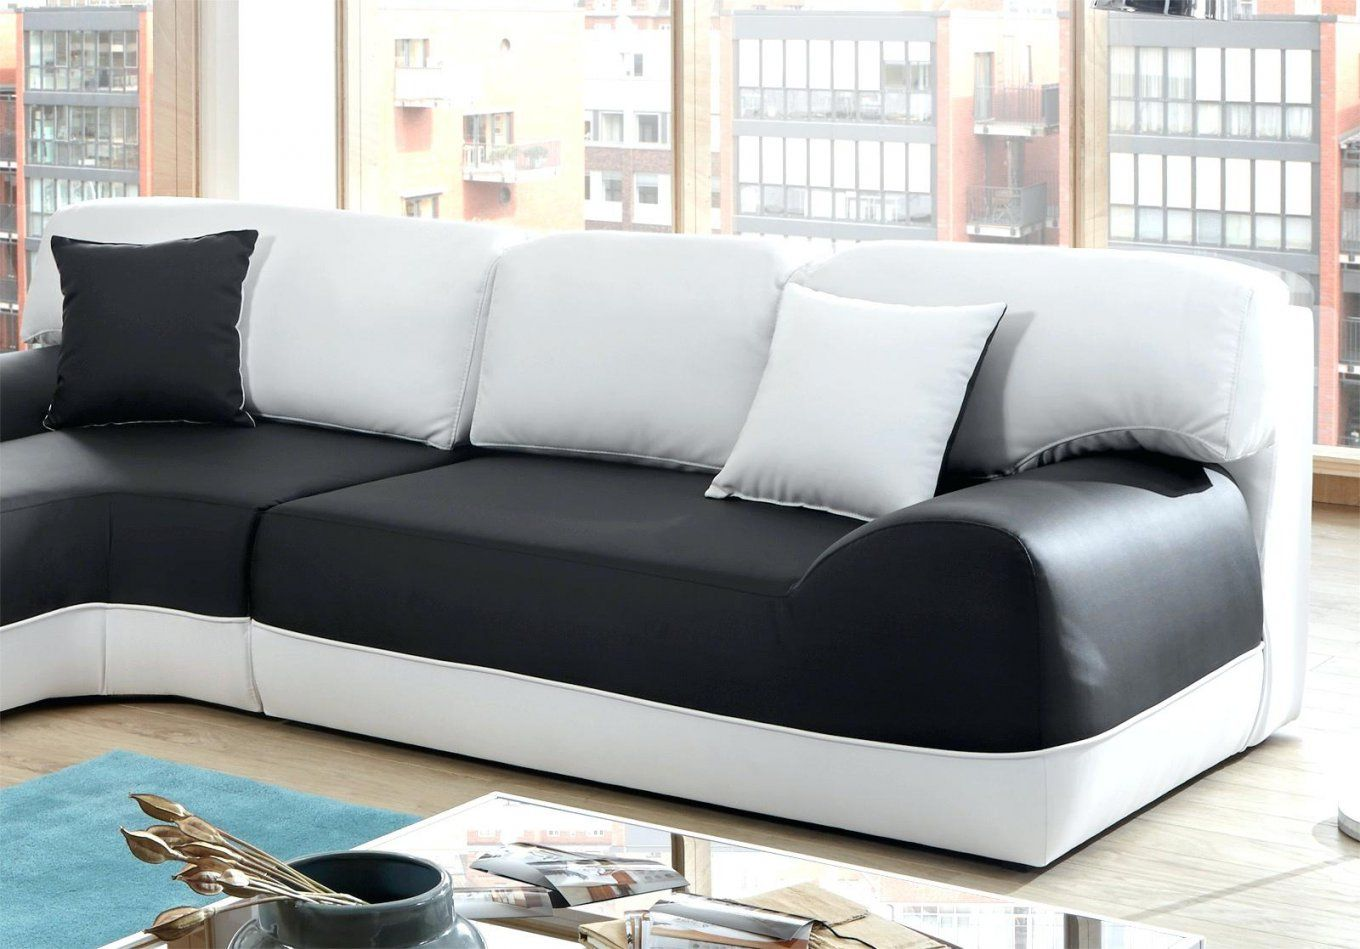 Big Sofa Ultsch Otto Big Sofa Xxl Haus Design Ideen